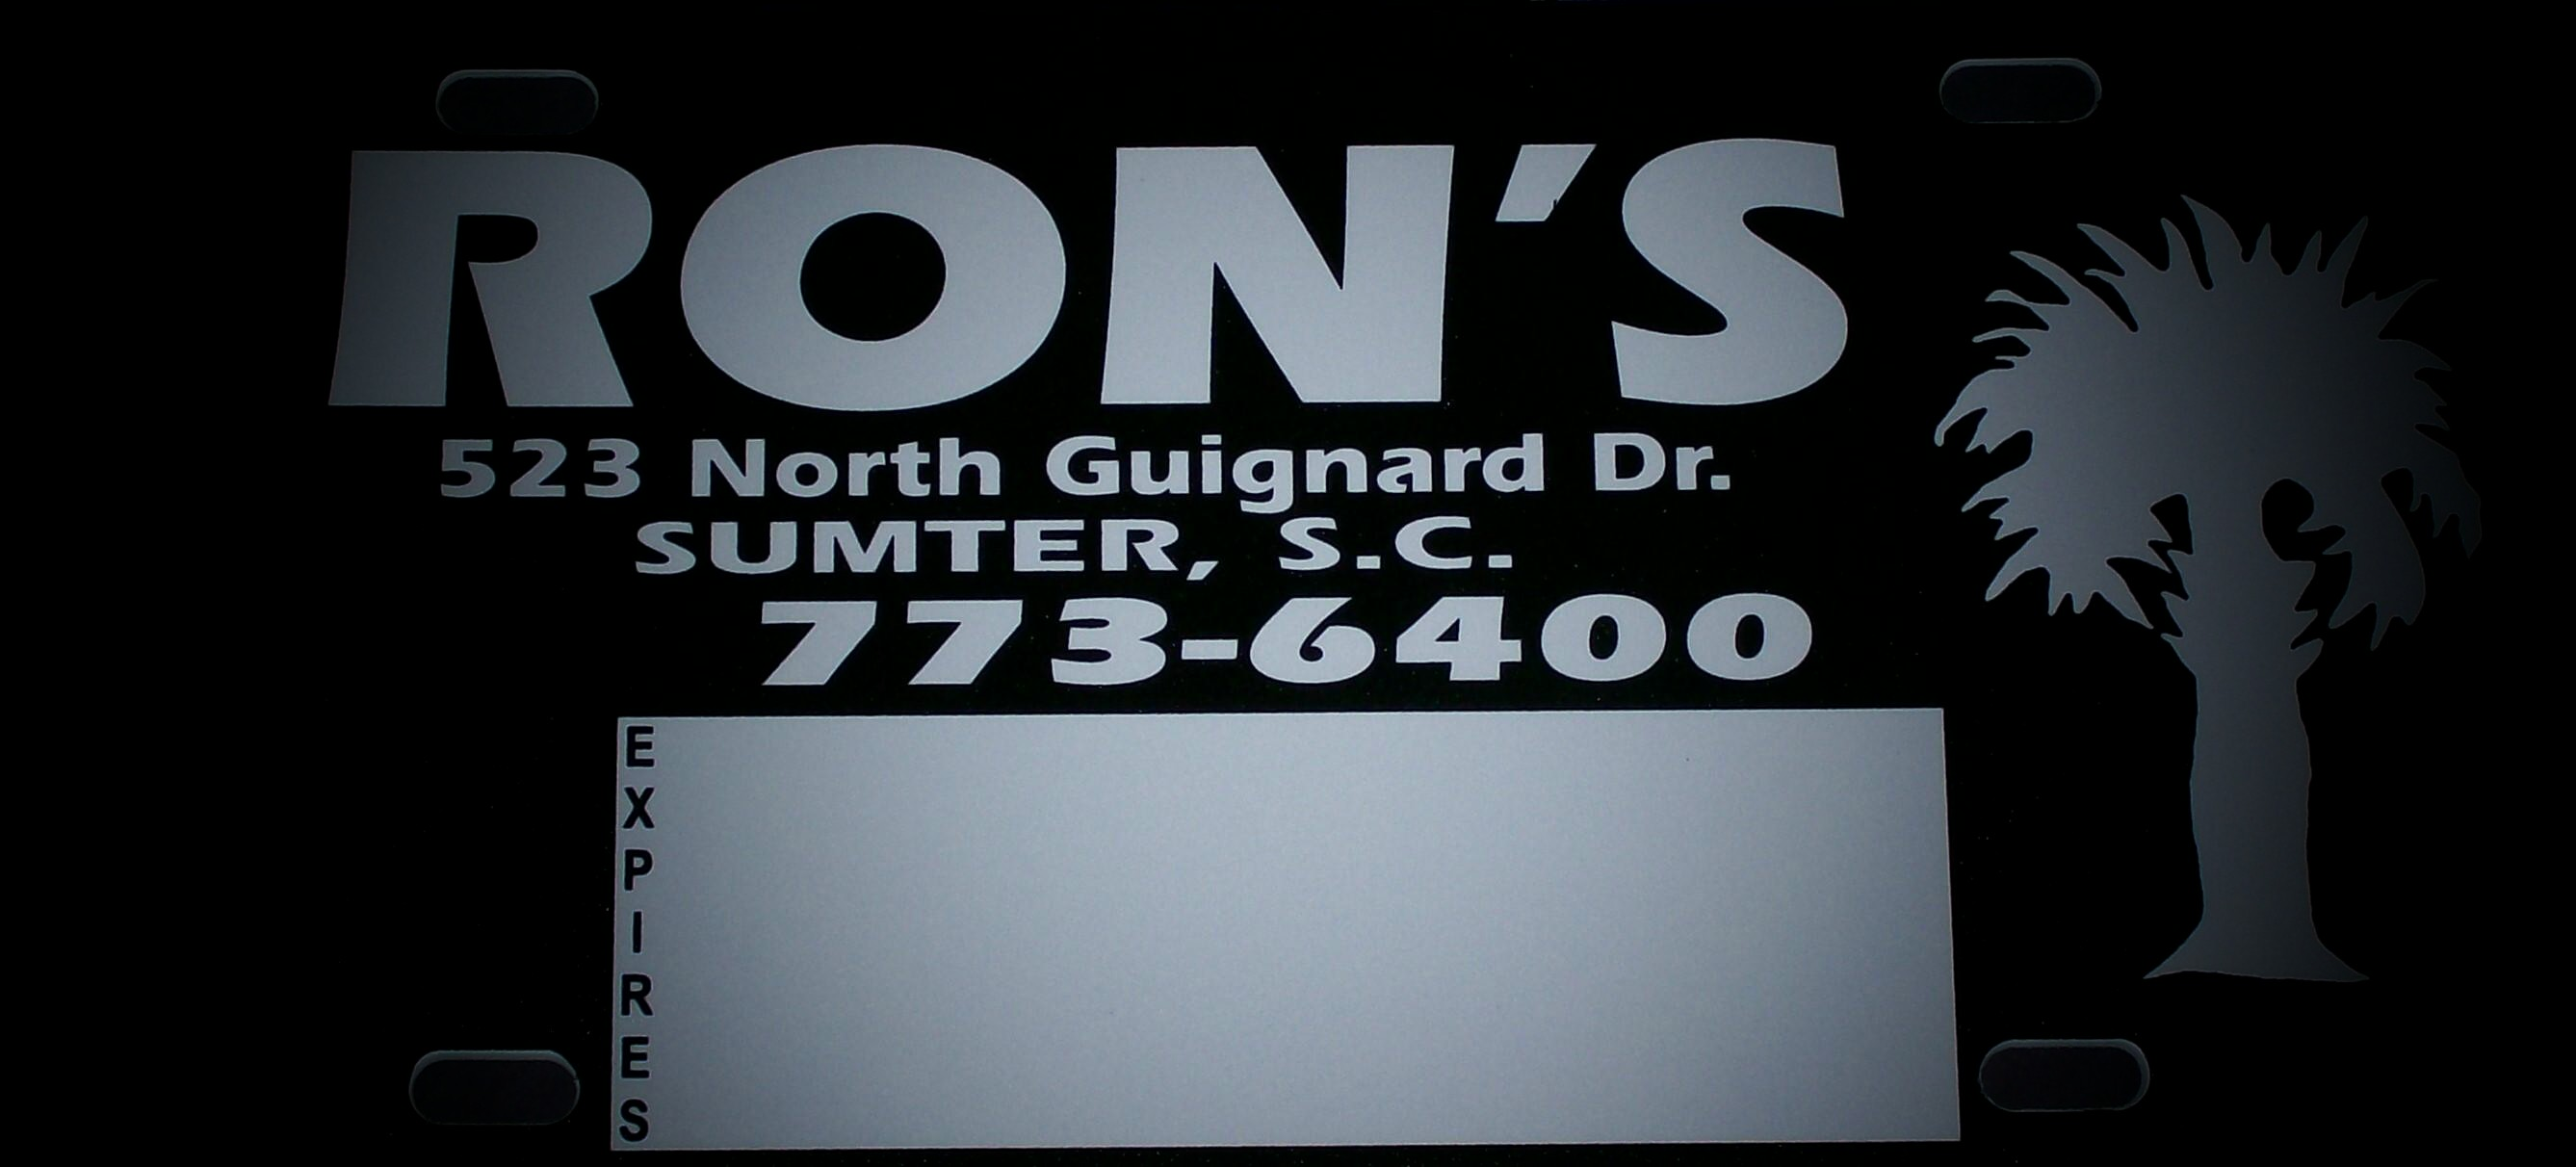 Ron's Used Cars